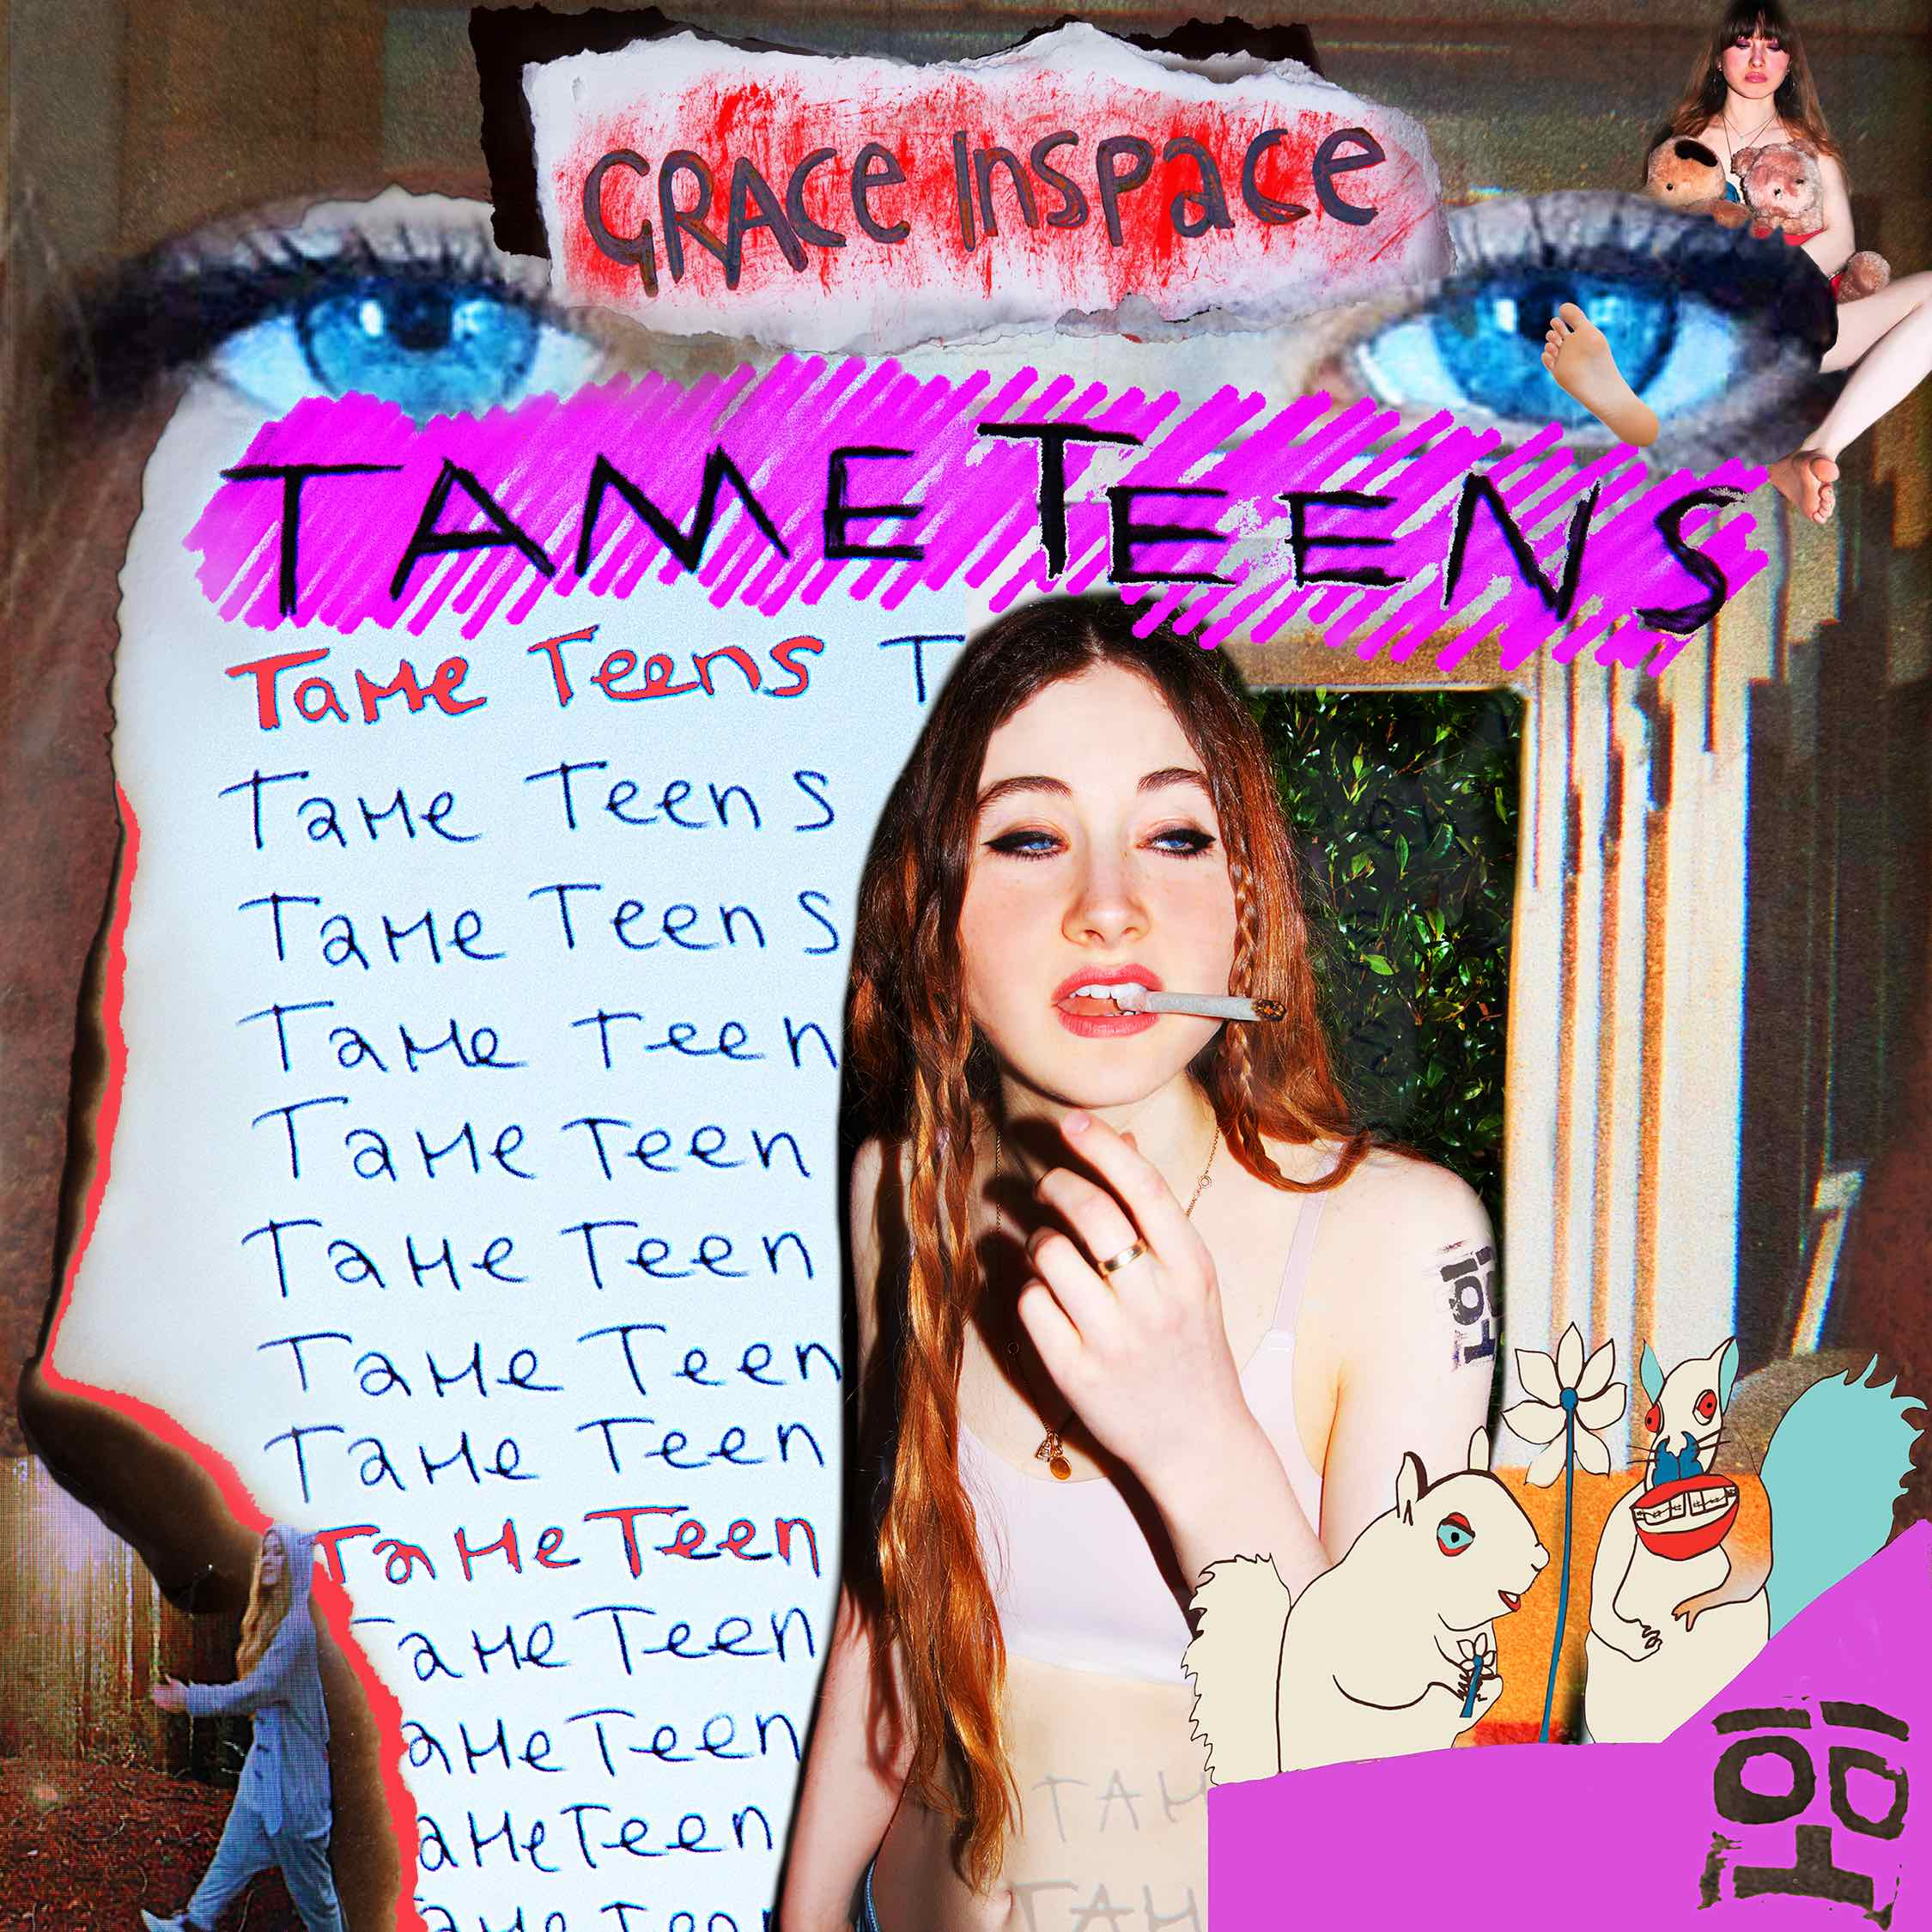 LISTEN TO TAME TEENS HERE - FOLLOW GRACE INSPACE:SPOTIFYINSTAGRAMTWITTERFACEBOOKSOUNDCLOUD